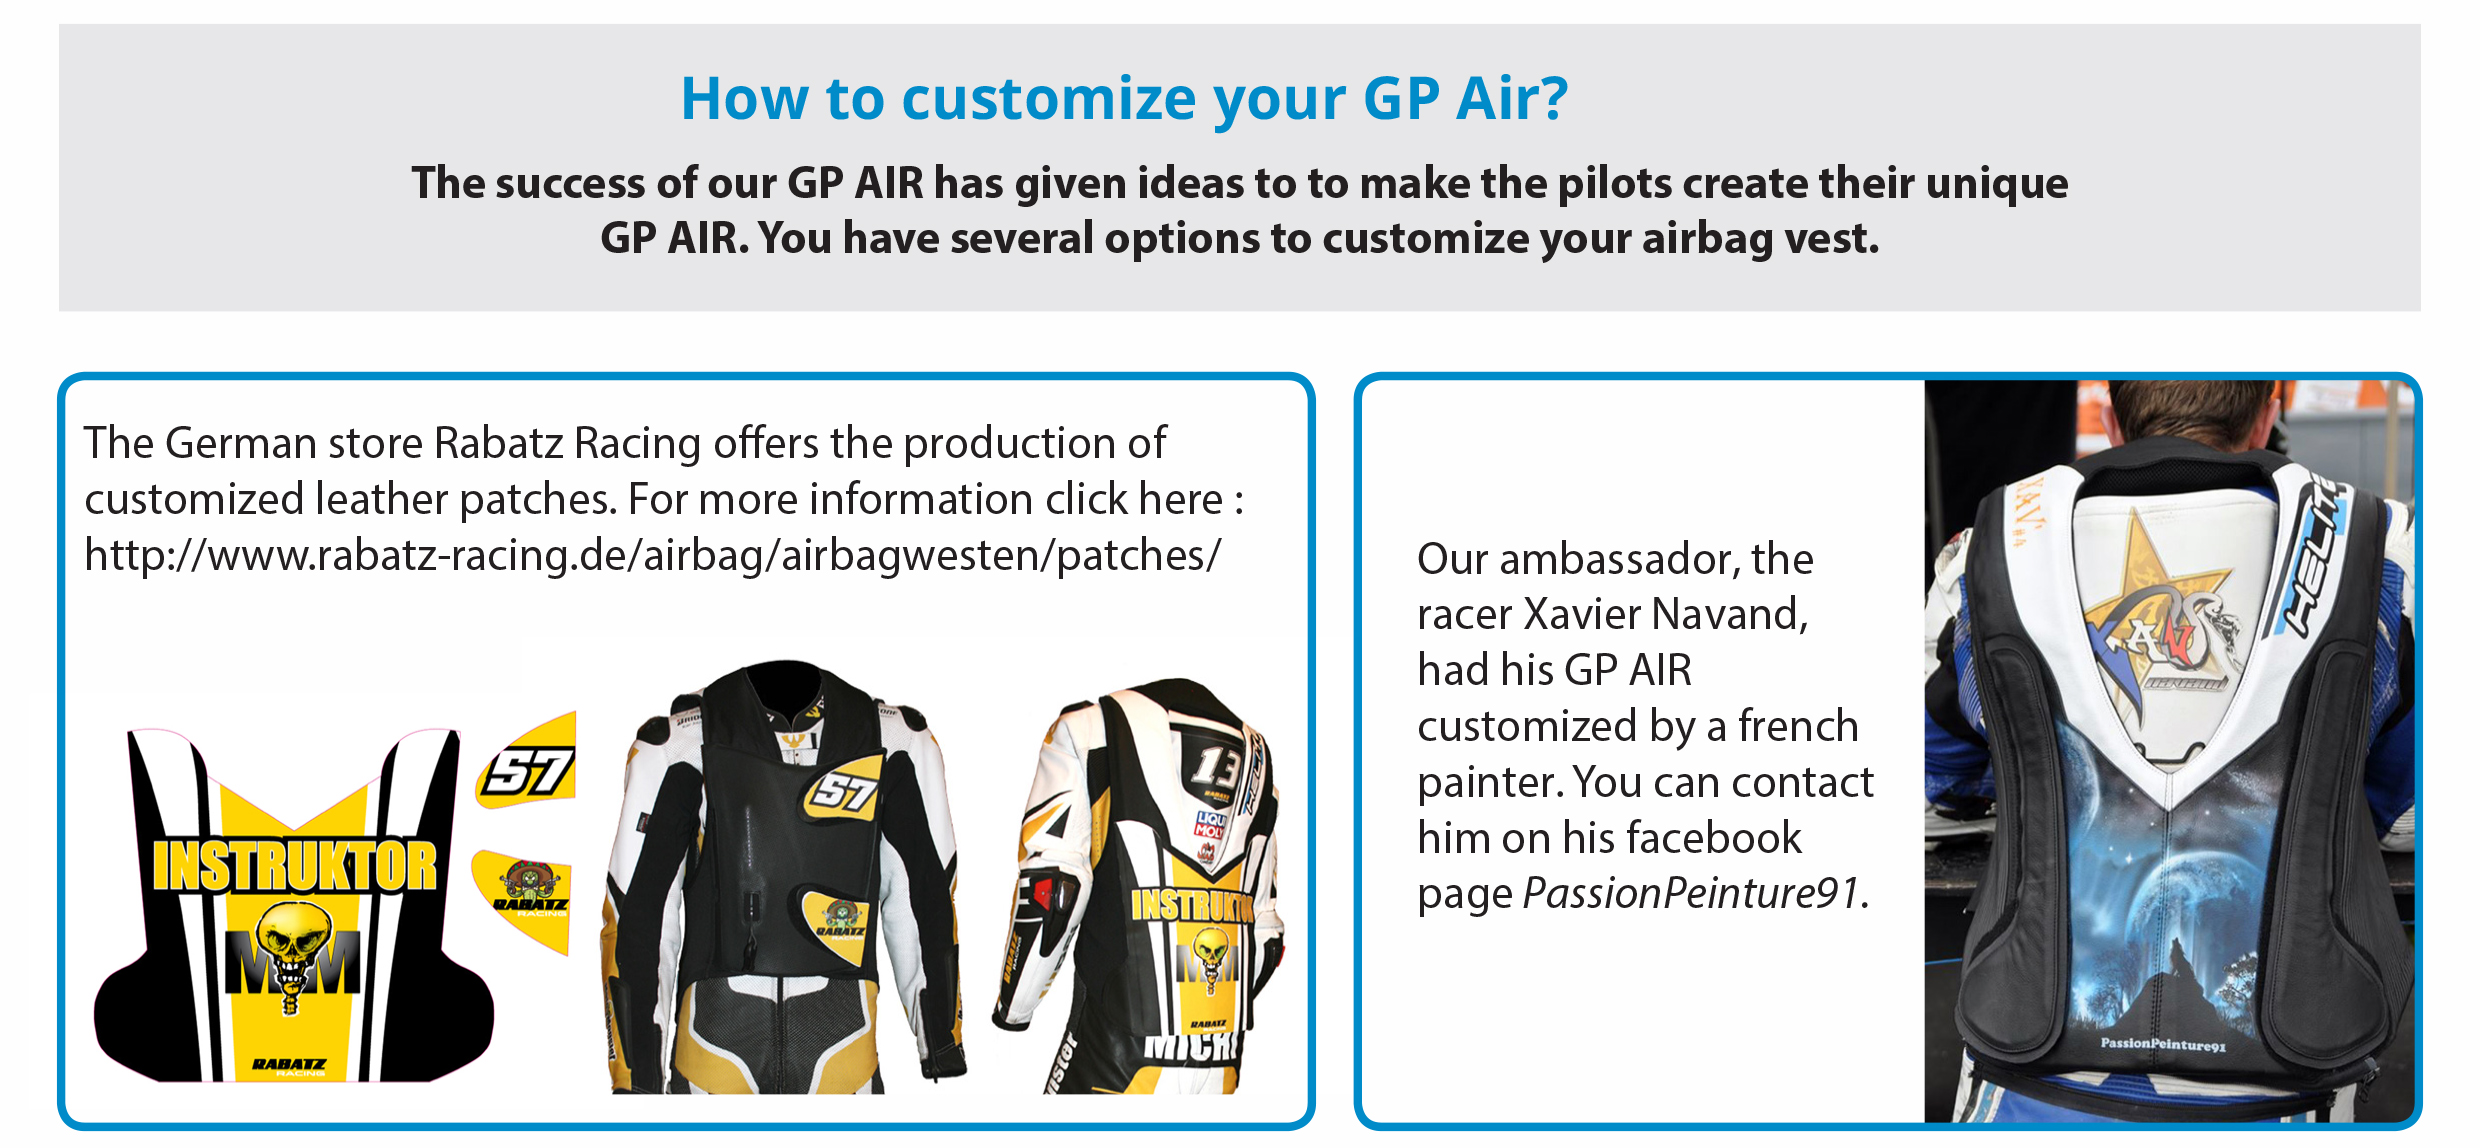 gp-air-customization-links.jpg